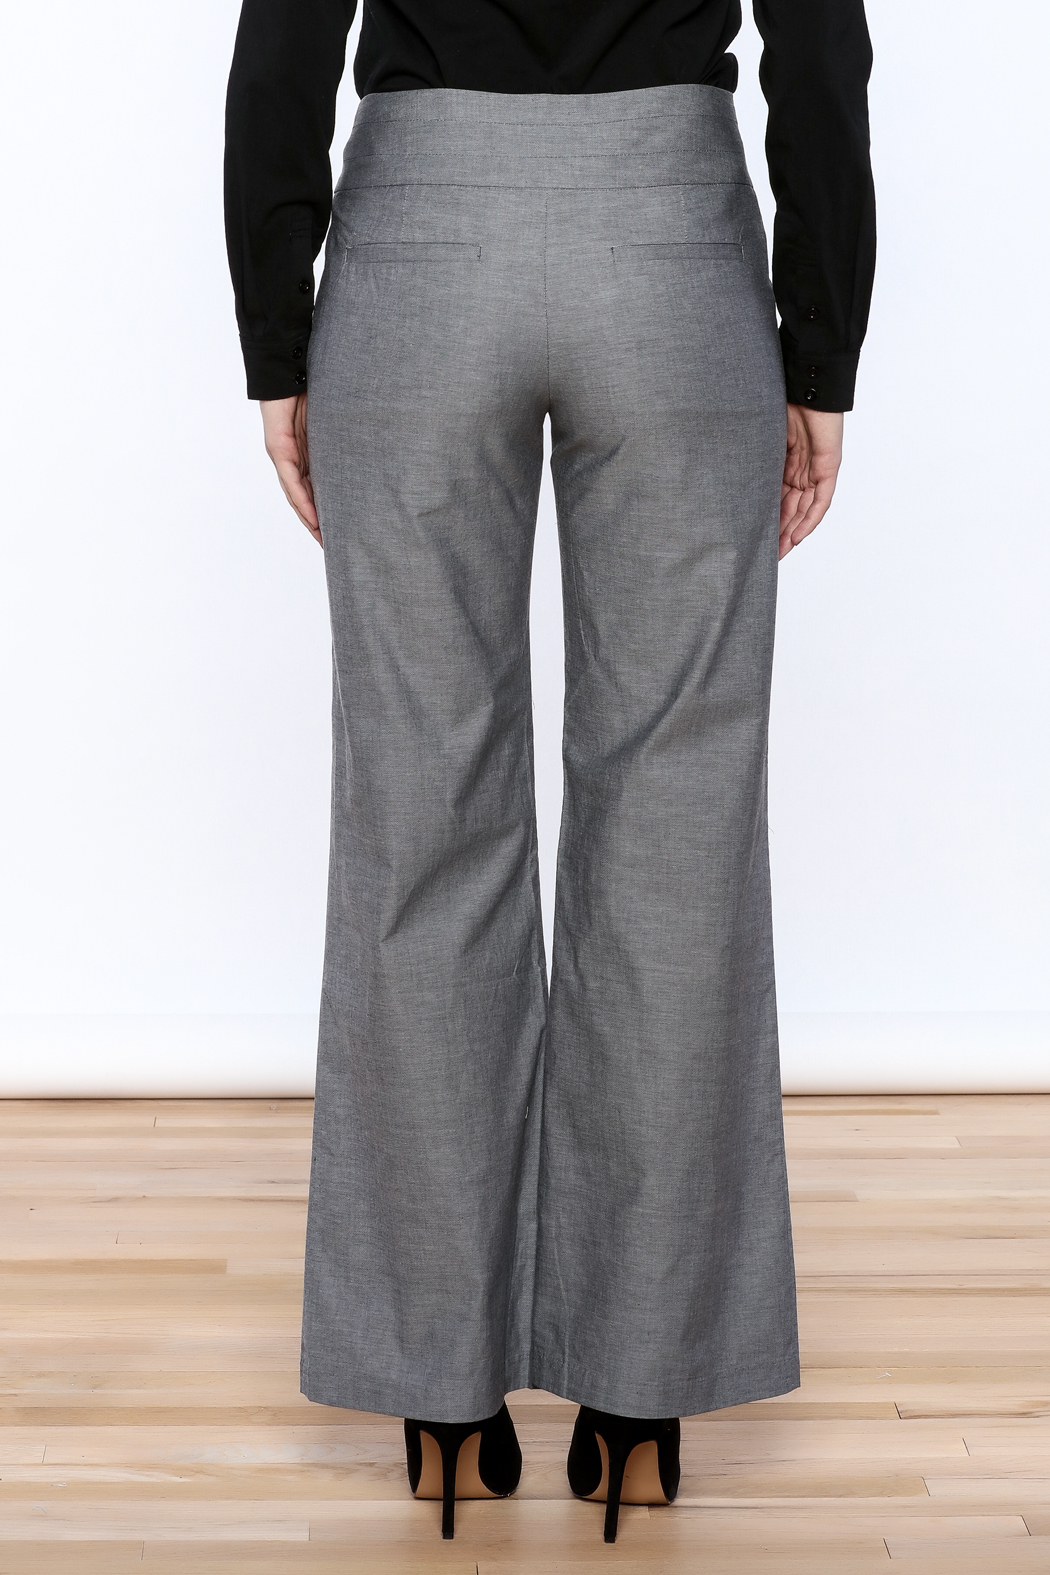 C. Luce Straight Cut Pants - Back Cropped Image